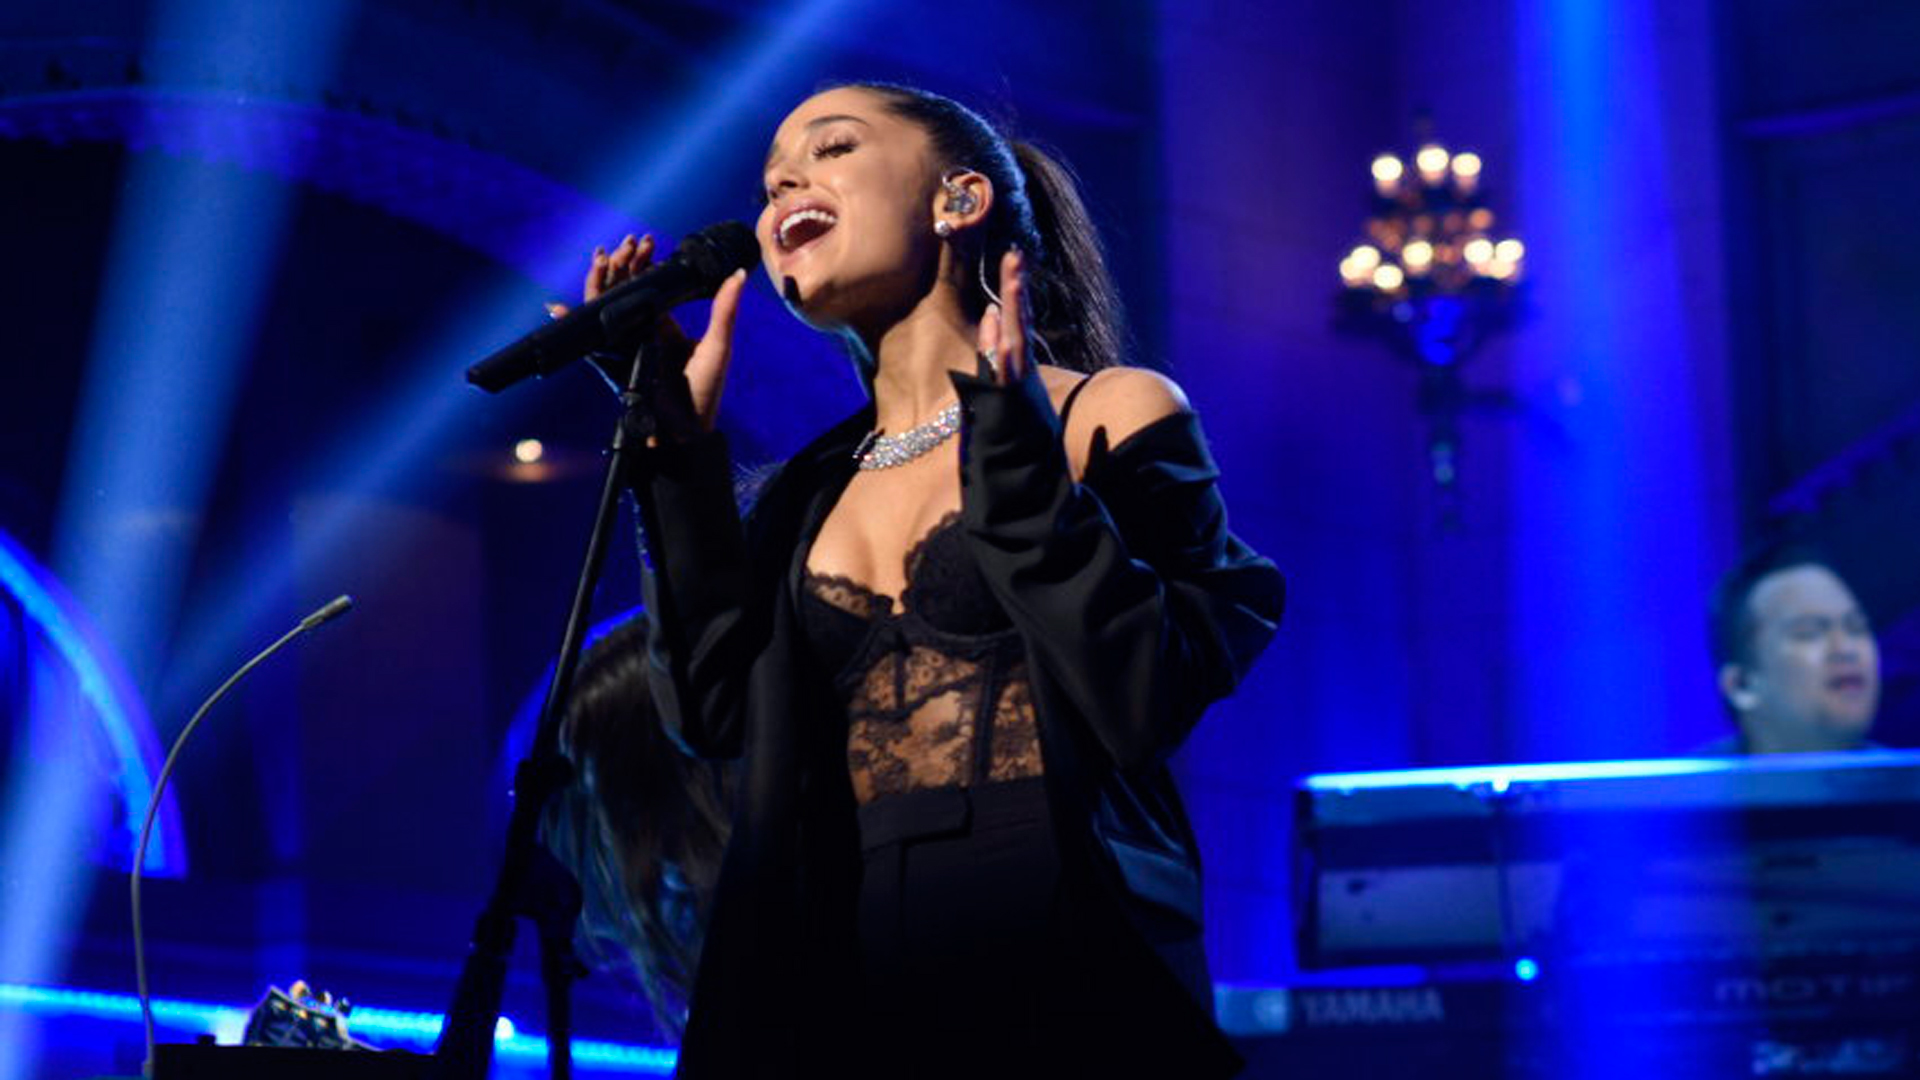 """Ariana Grande's """"One Last Time"""" Song and Music Video Hit #1 on the UK  Charts in Honor of the Manchester Bombing Victims – Arts + Culture"""